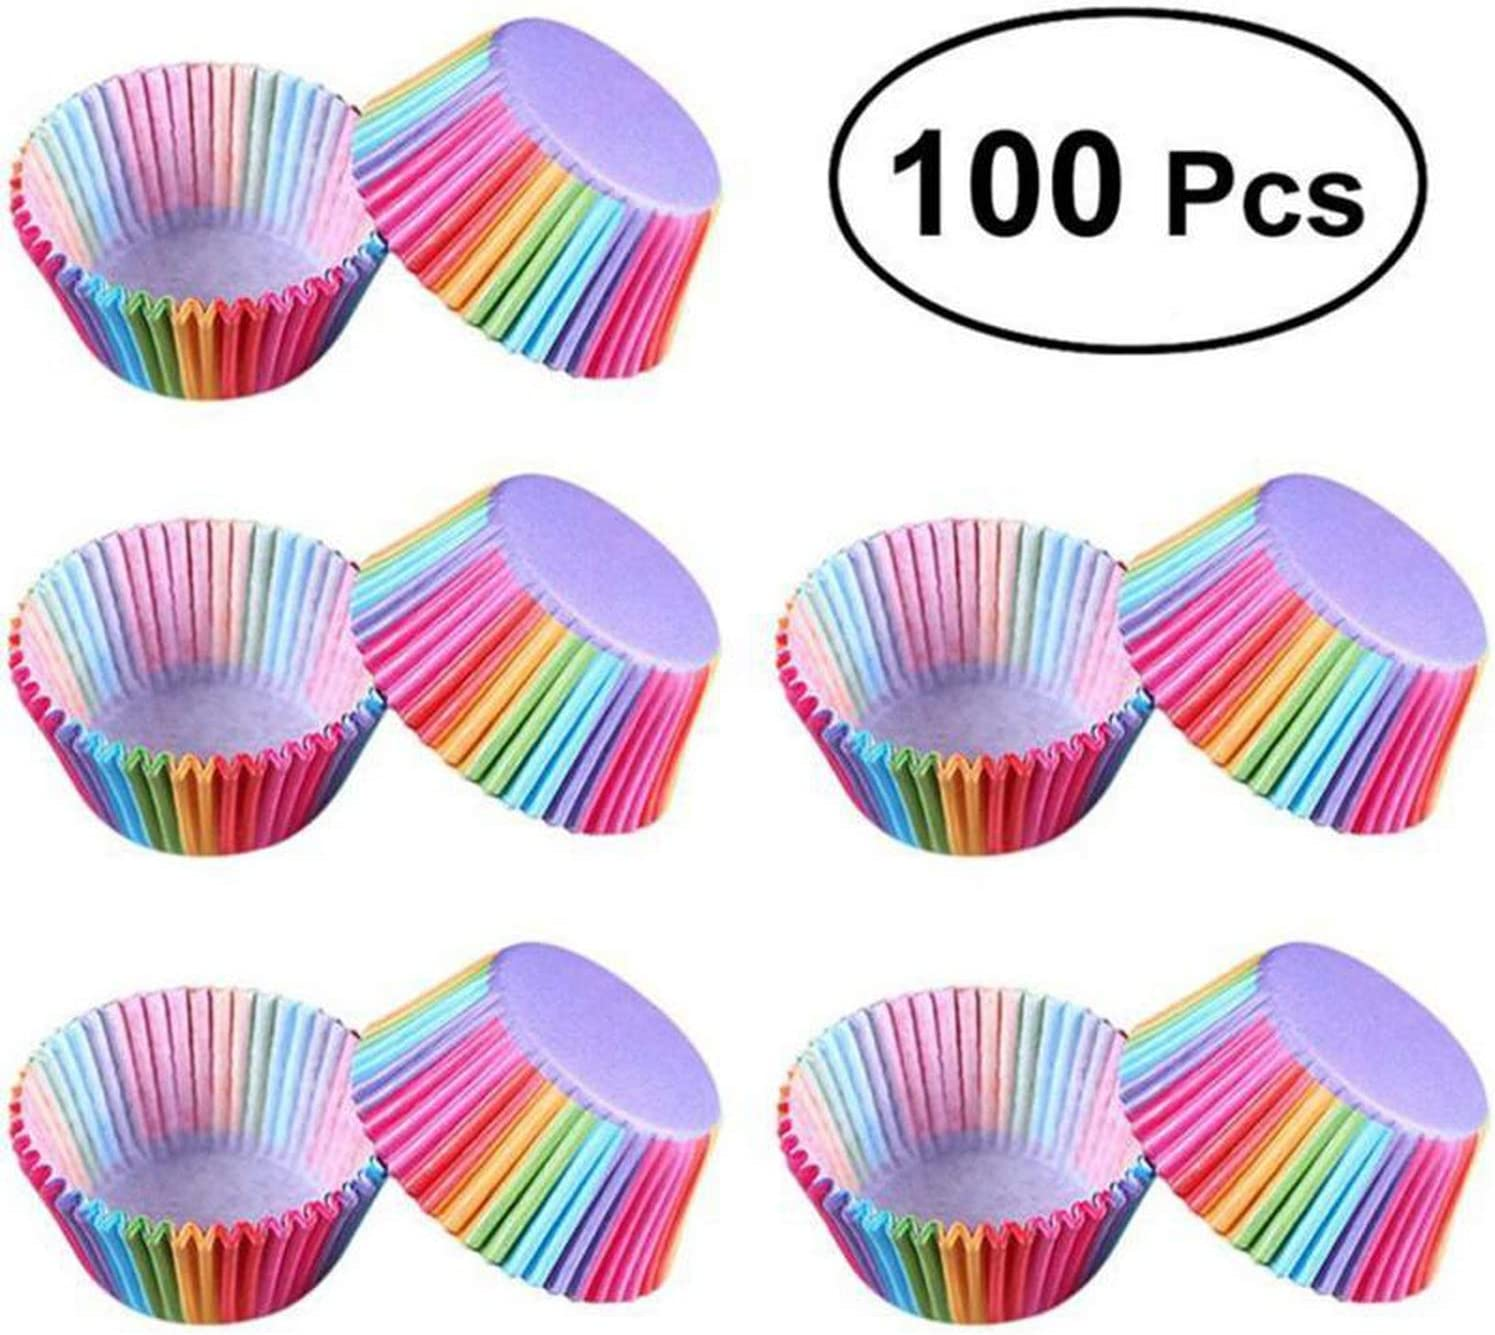 100pcs Mini Cupcake Liner Baking Cup Paper Muffin Cases Cake Cup Egg tarts Tray Cake Mould Wrapper Decorating Tools